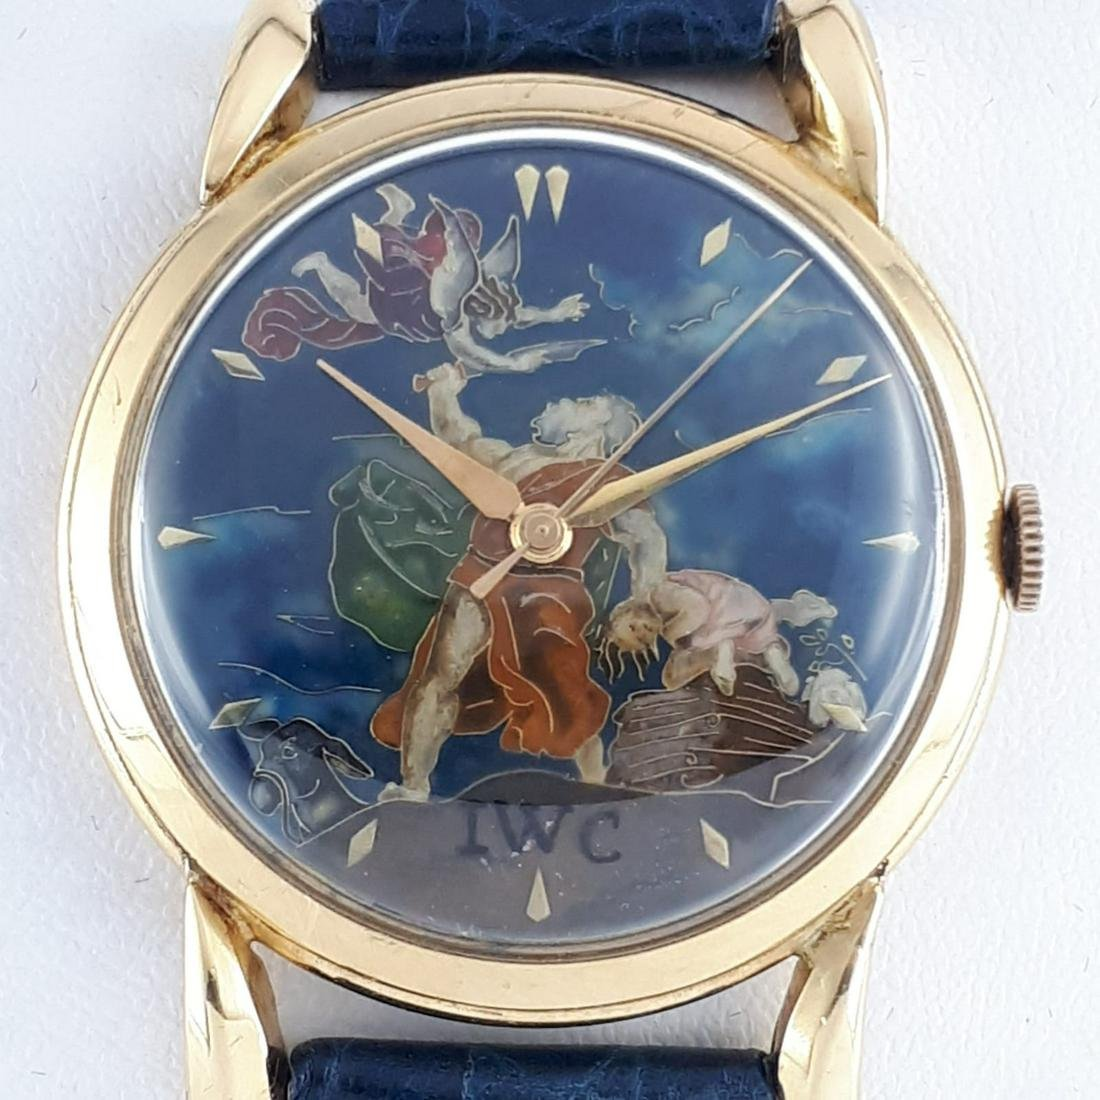 IWC - Vintage Collezione Dial, Gold, Manual Wind - Ref: